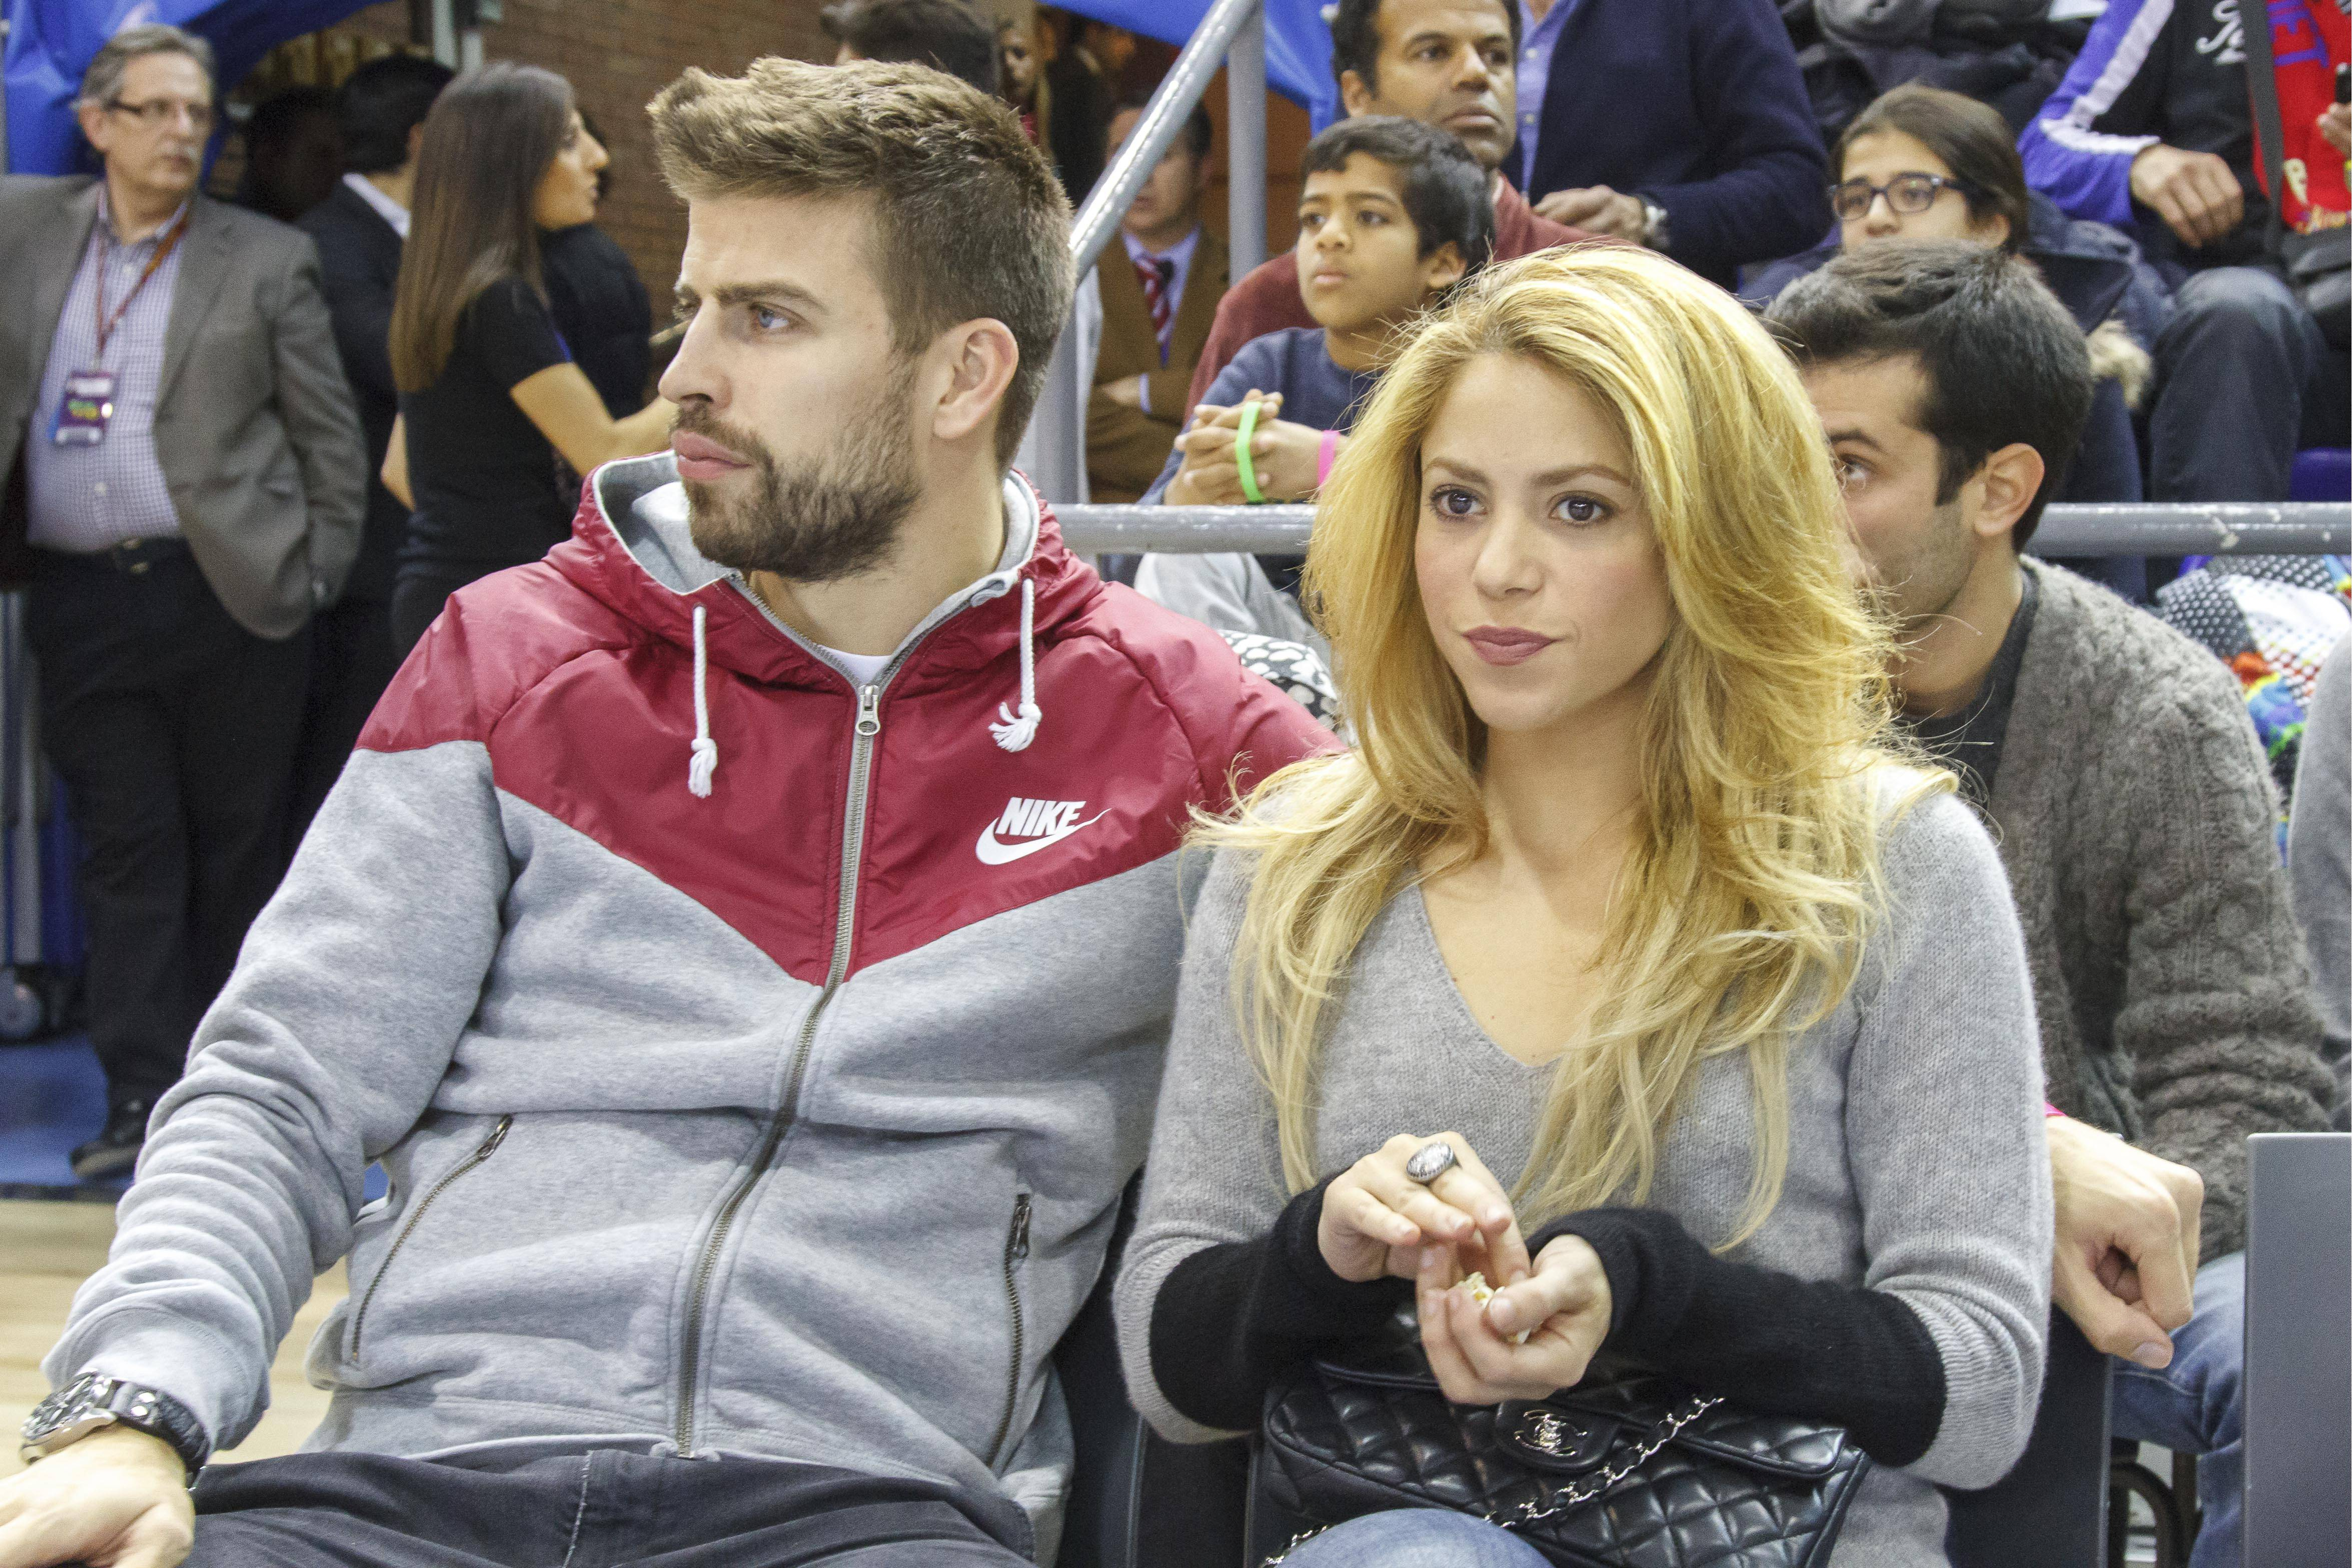 Shakira and Gerard Pique attend a Basketball match in Barcelona. Pictured: Shakira and Gerard Pique Ref: SPL659234 011213 Picture by: Splash News Splash News and Pictures Los Angeles: 310-821-2666 New York: 212-619-2666 London: 870-934-2666 photodesk@splashnews.com